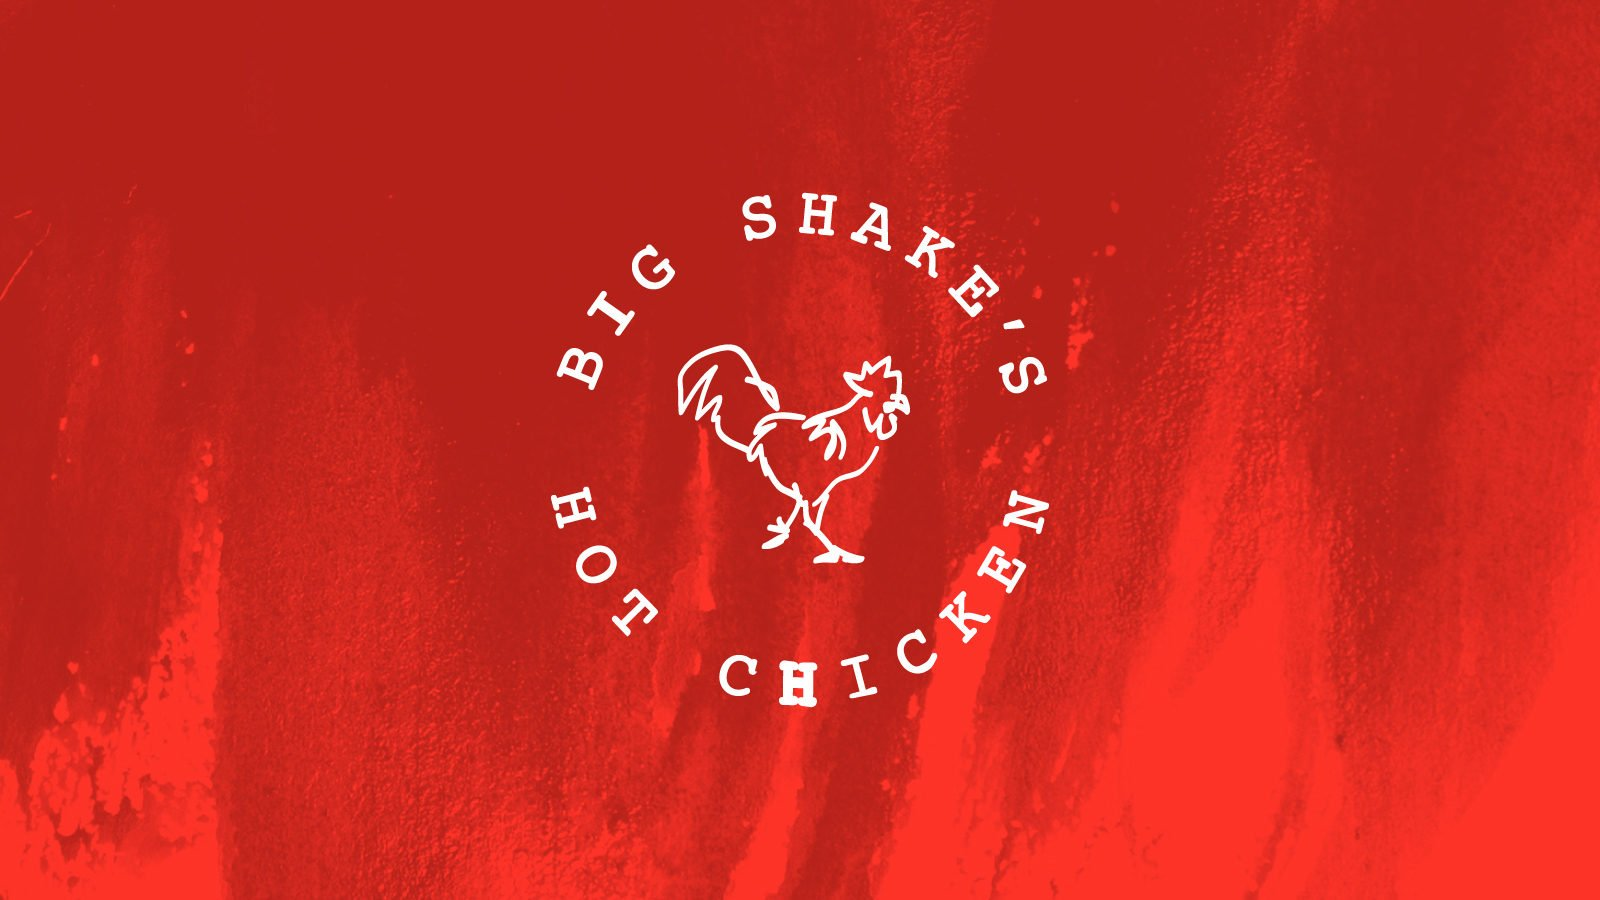 An Identity for Big Shakes Hot Chicken By Bullhorn Creative